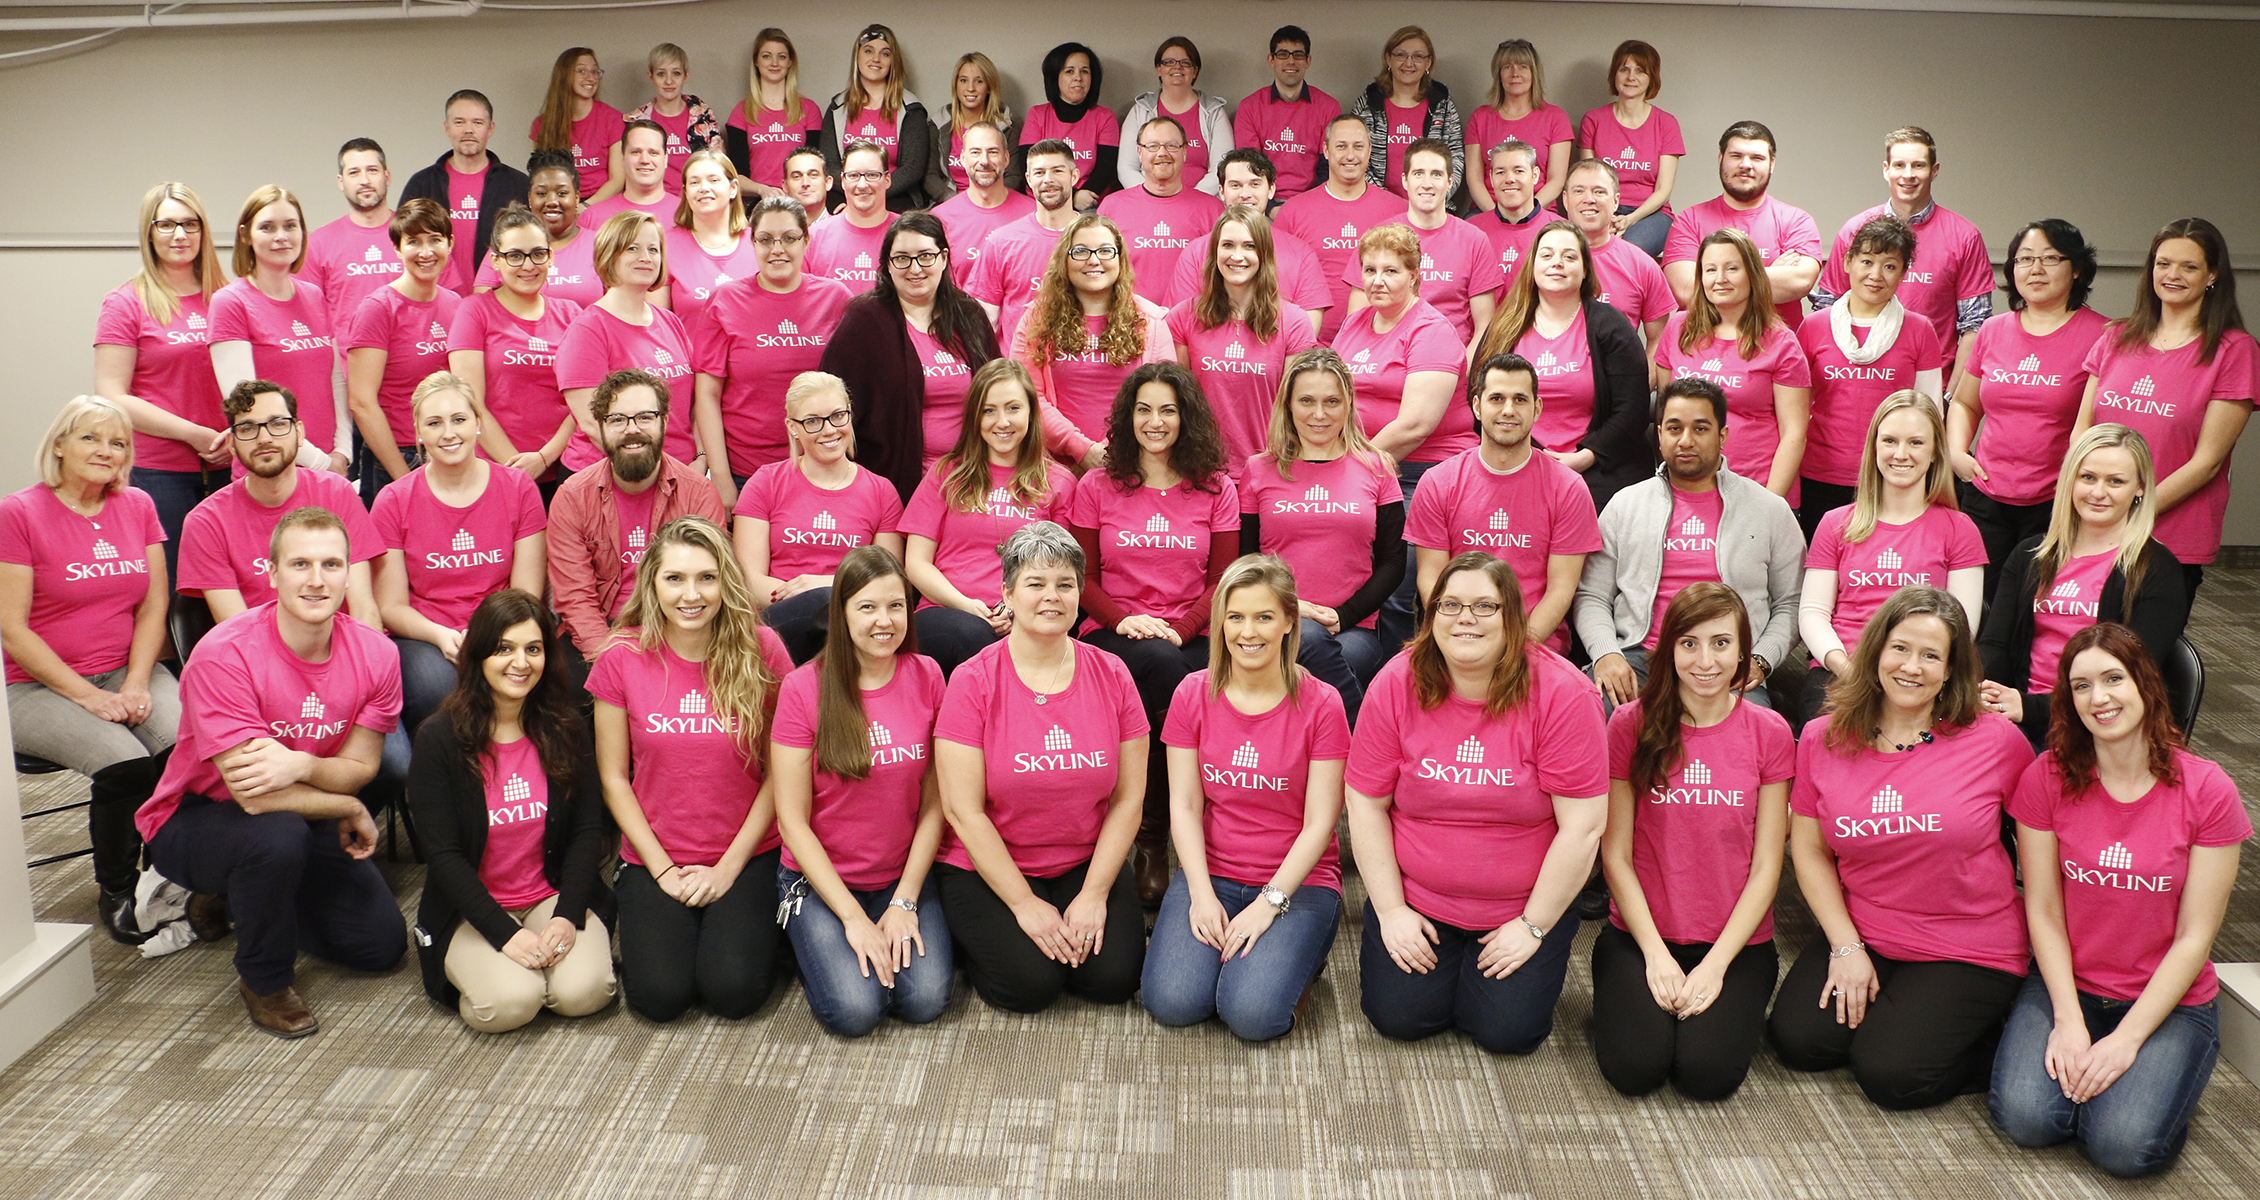 skyline-head-office-staff-in-pink-skyline-shirts